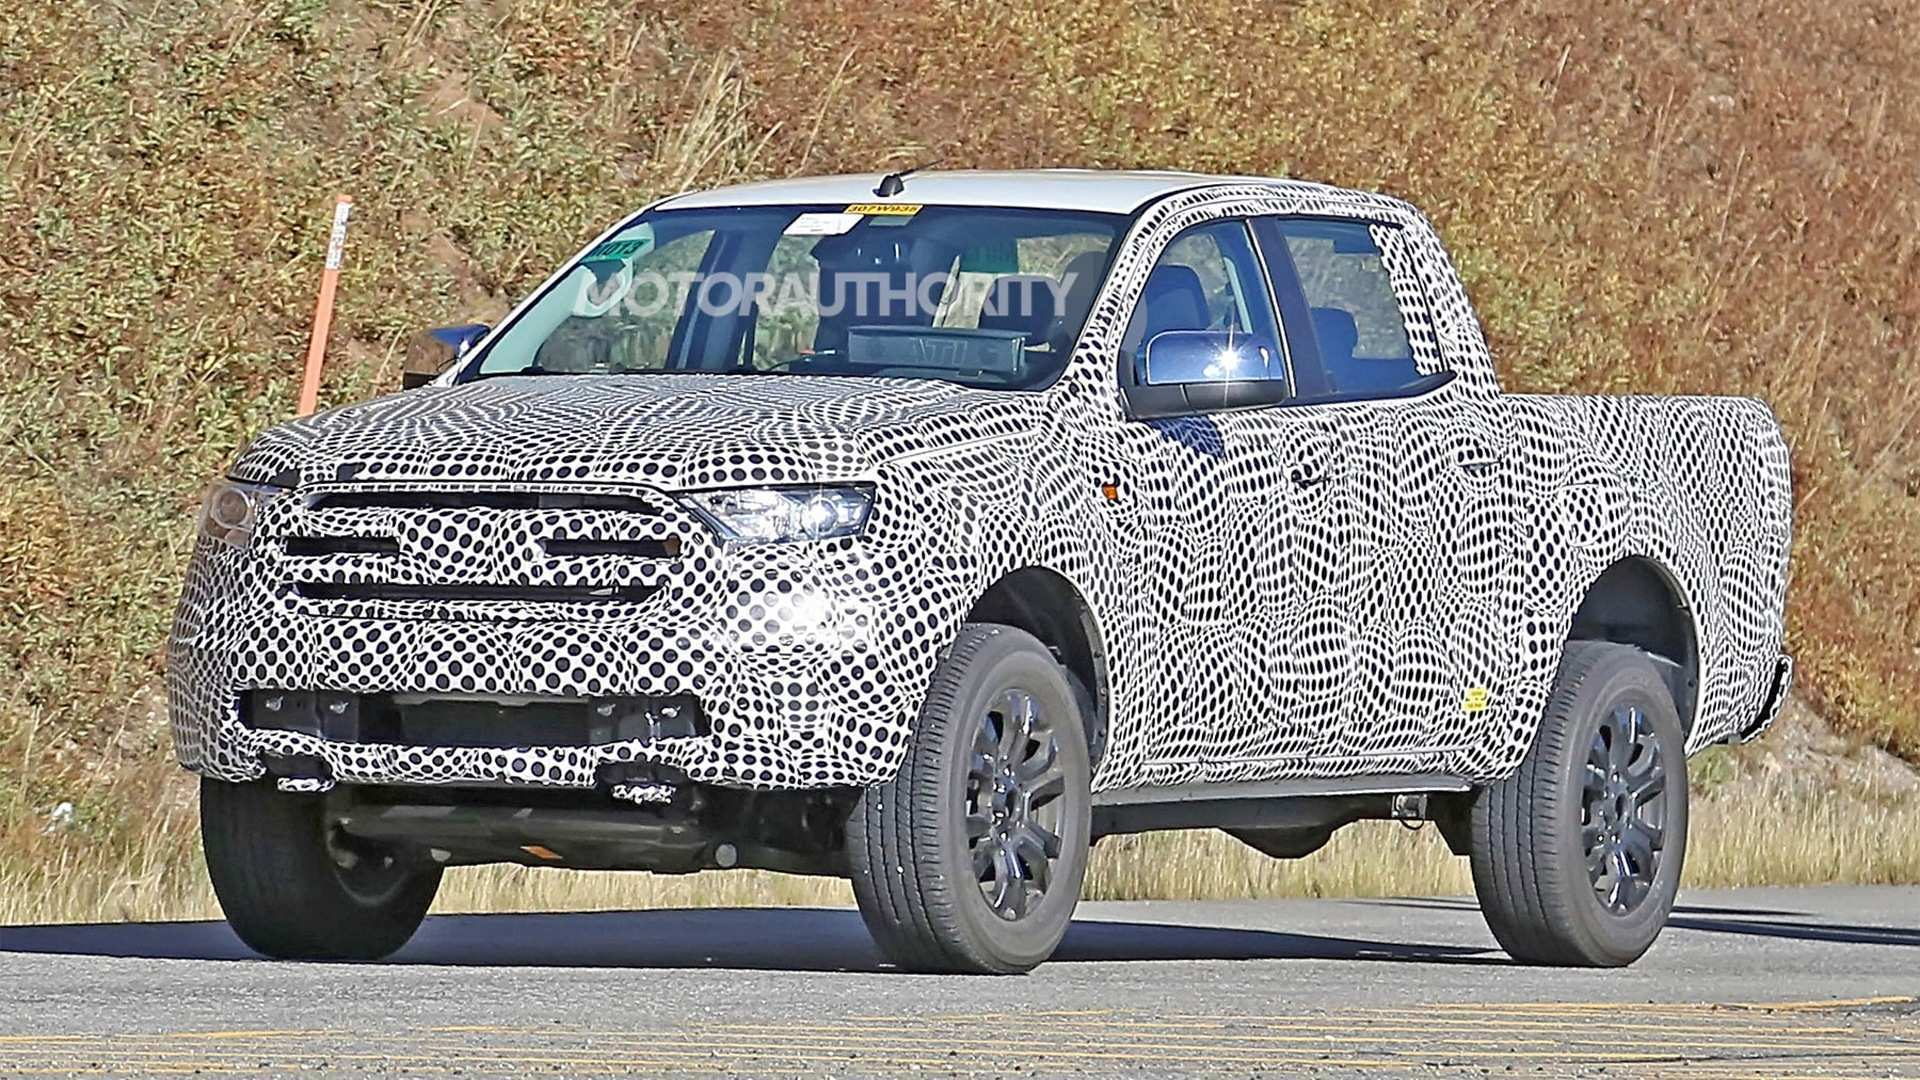 17 Gallery of 2020 Ford Ranger Vs BMW Canyon Photos for 2020 Ford Ranger Vs BMW Canyon